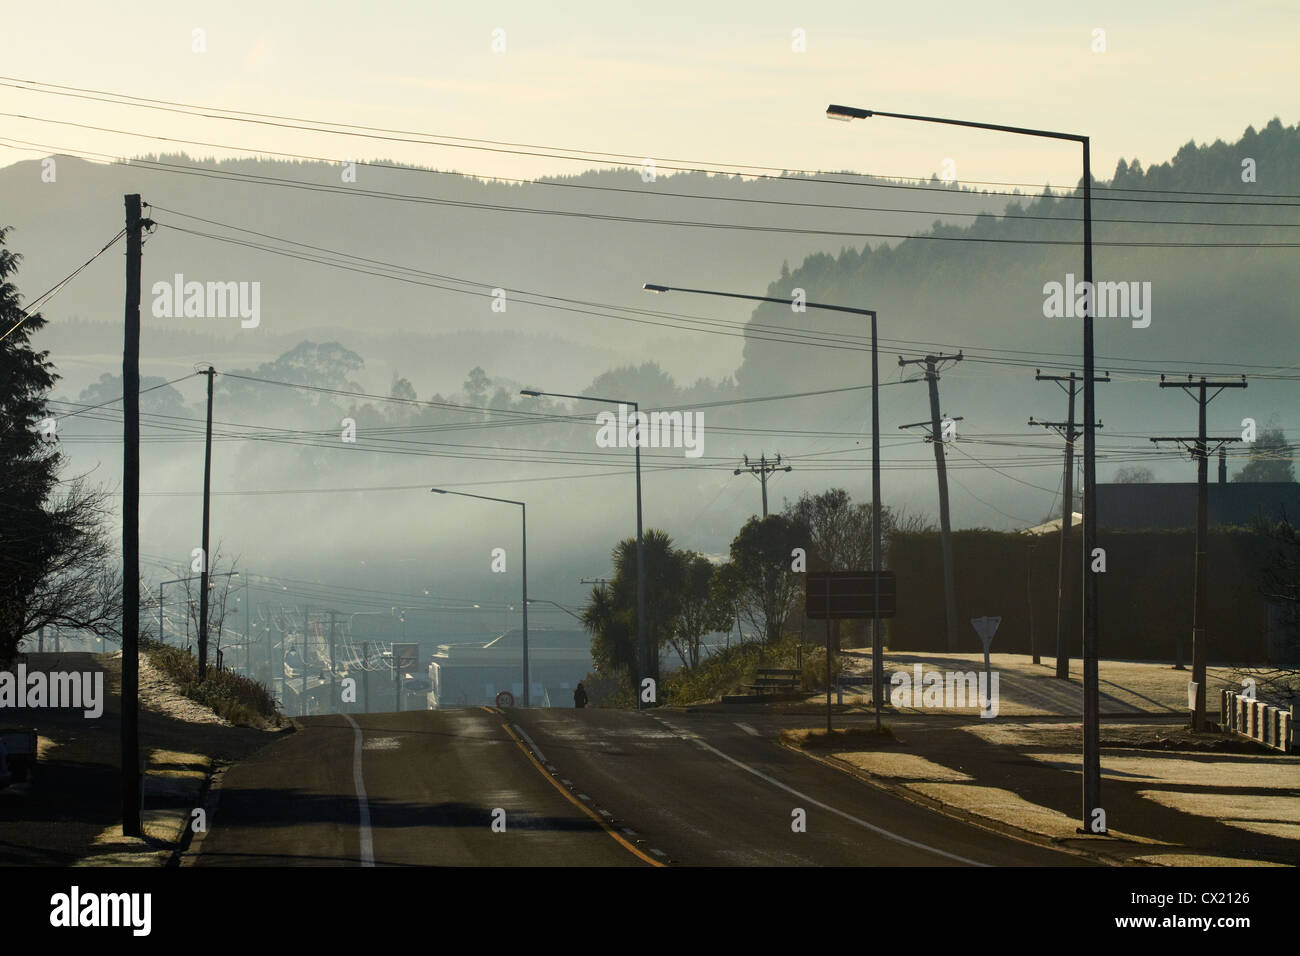 Air pollution, Palmerston, East Otago, Otago, South Island, New Zealand - Stock Image